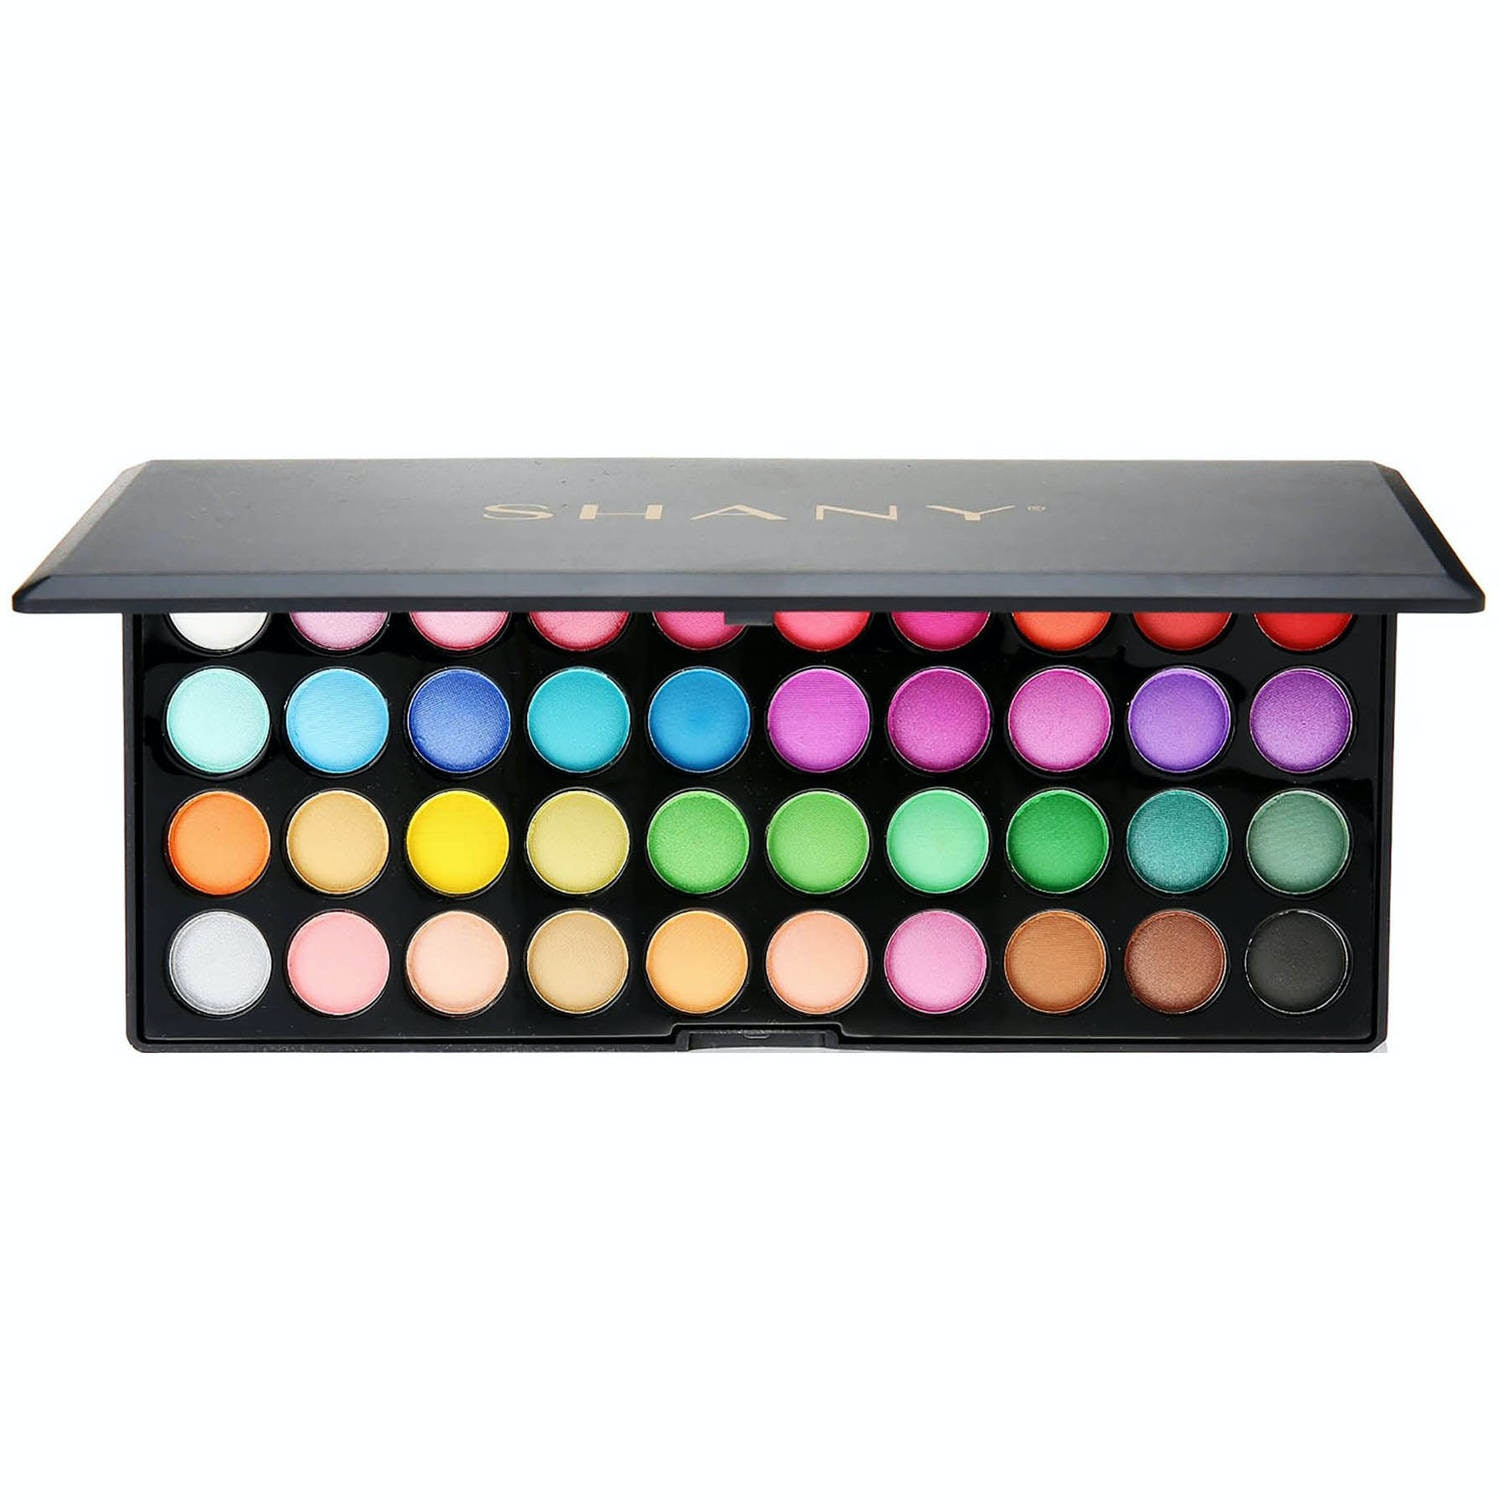 677440caa The Best Affordable Eyeshadow Palettes at Walmart for Under $20